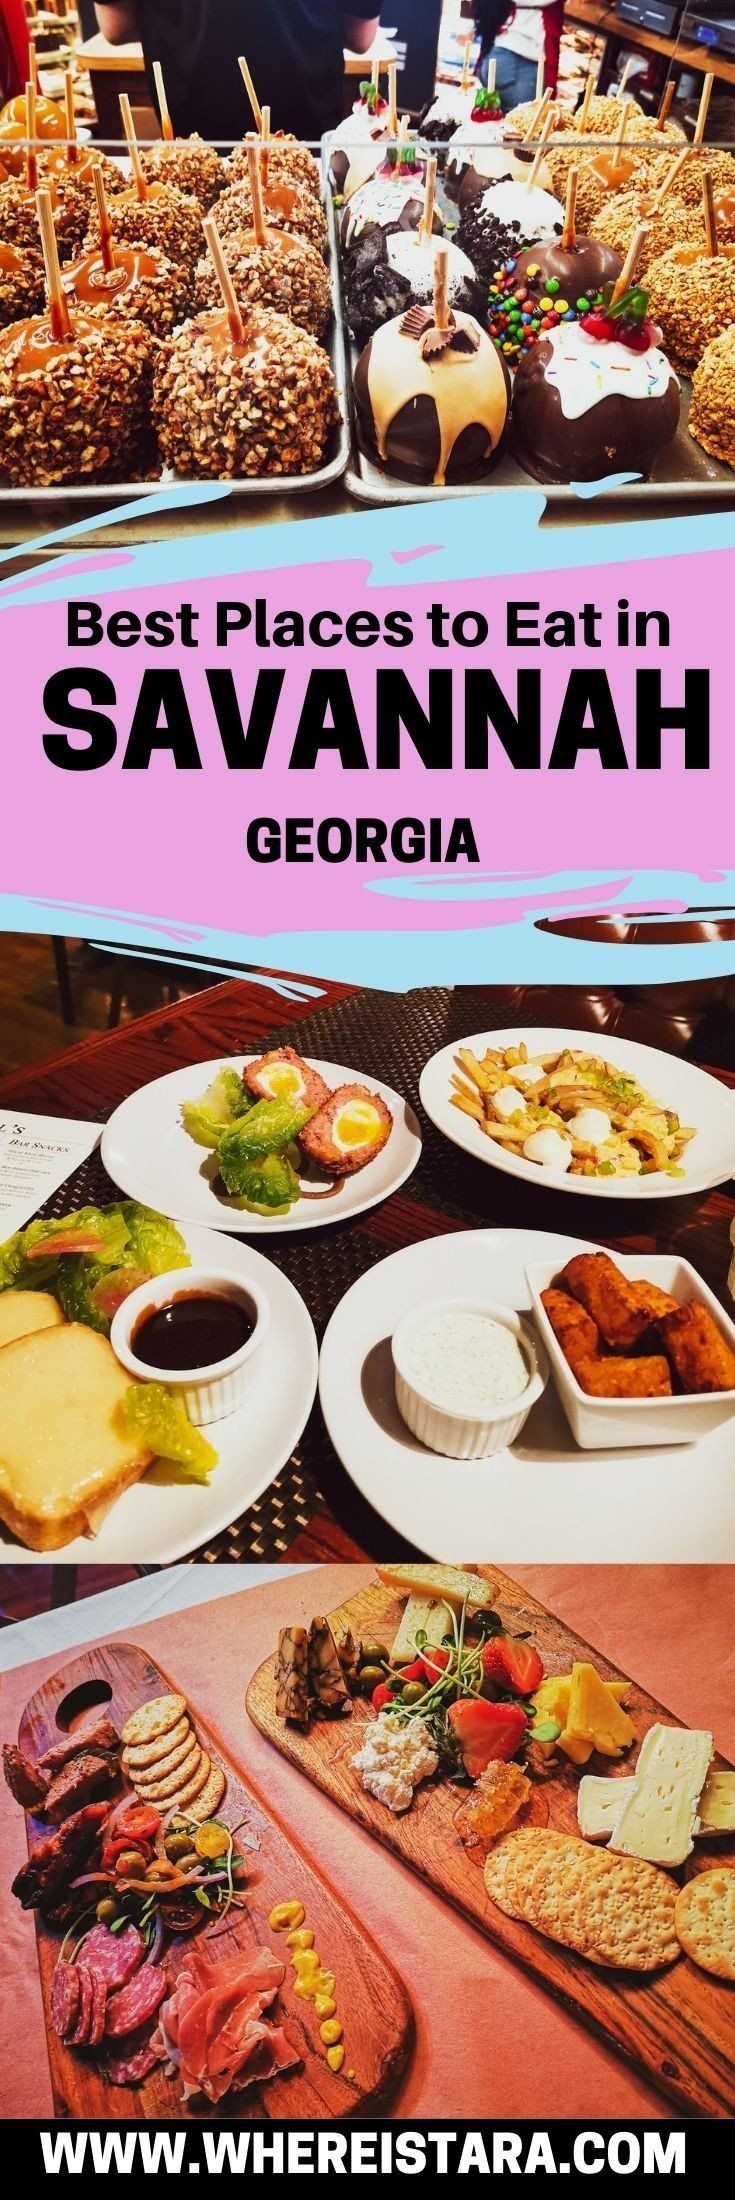 The Most Delicious Food In Savannah Georgia Savannah Chat Places To Eat Best Places To Eat